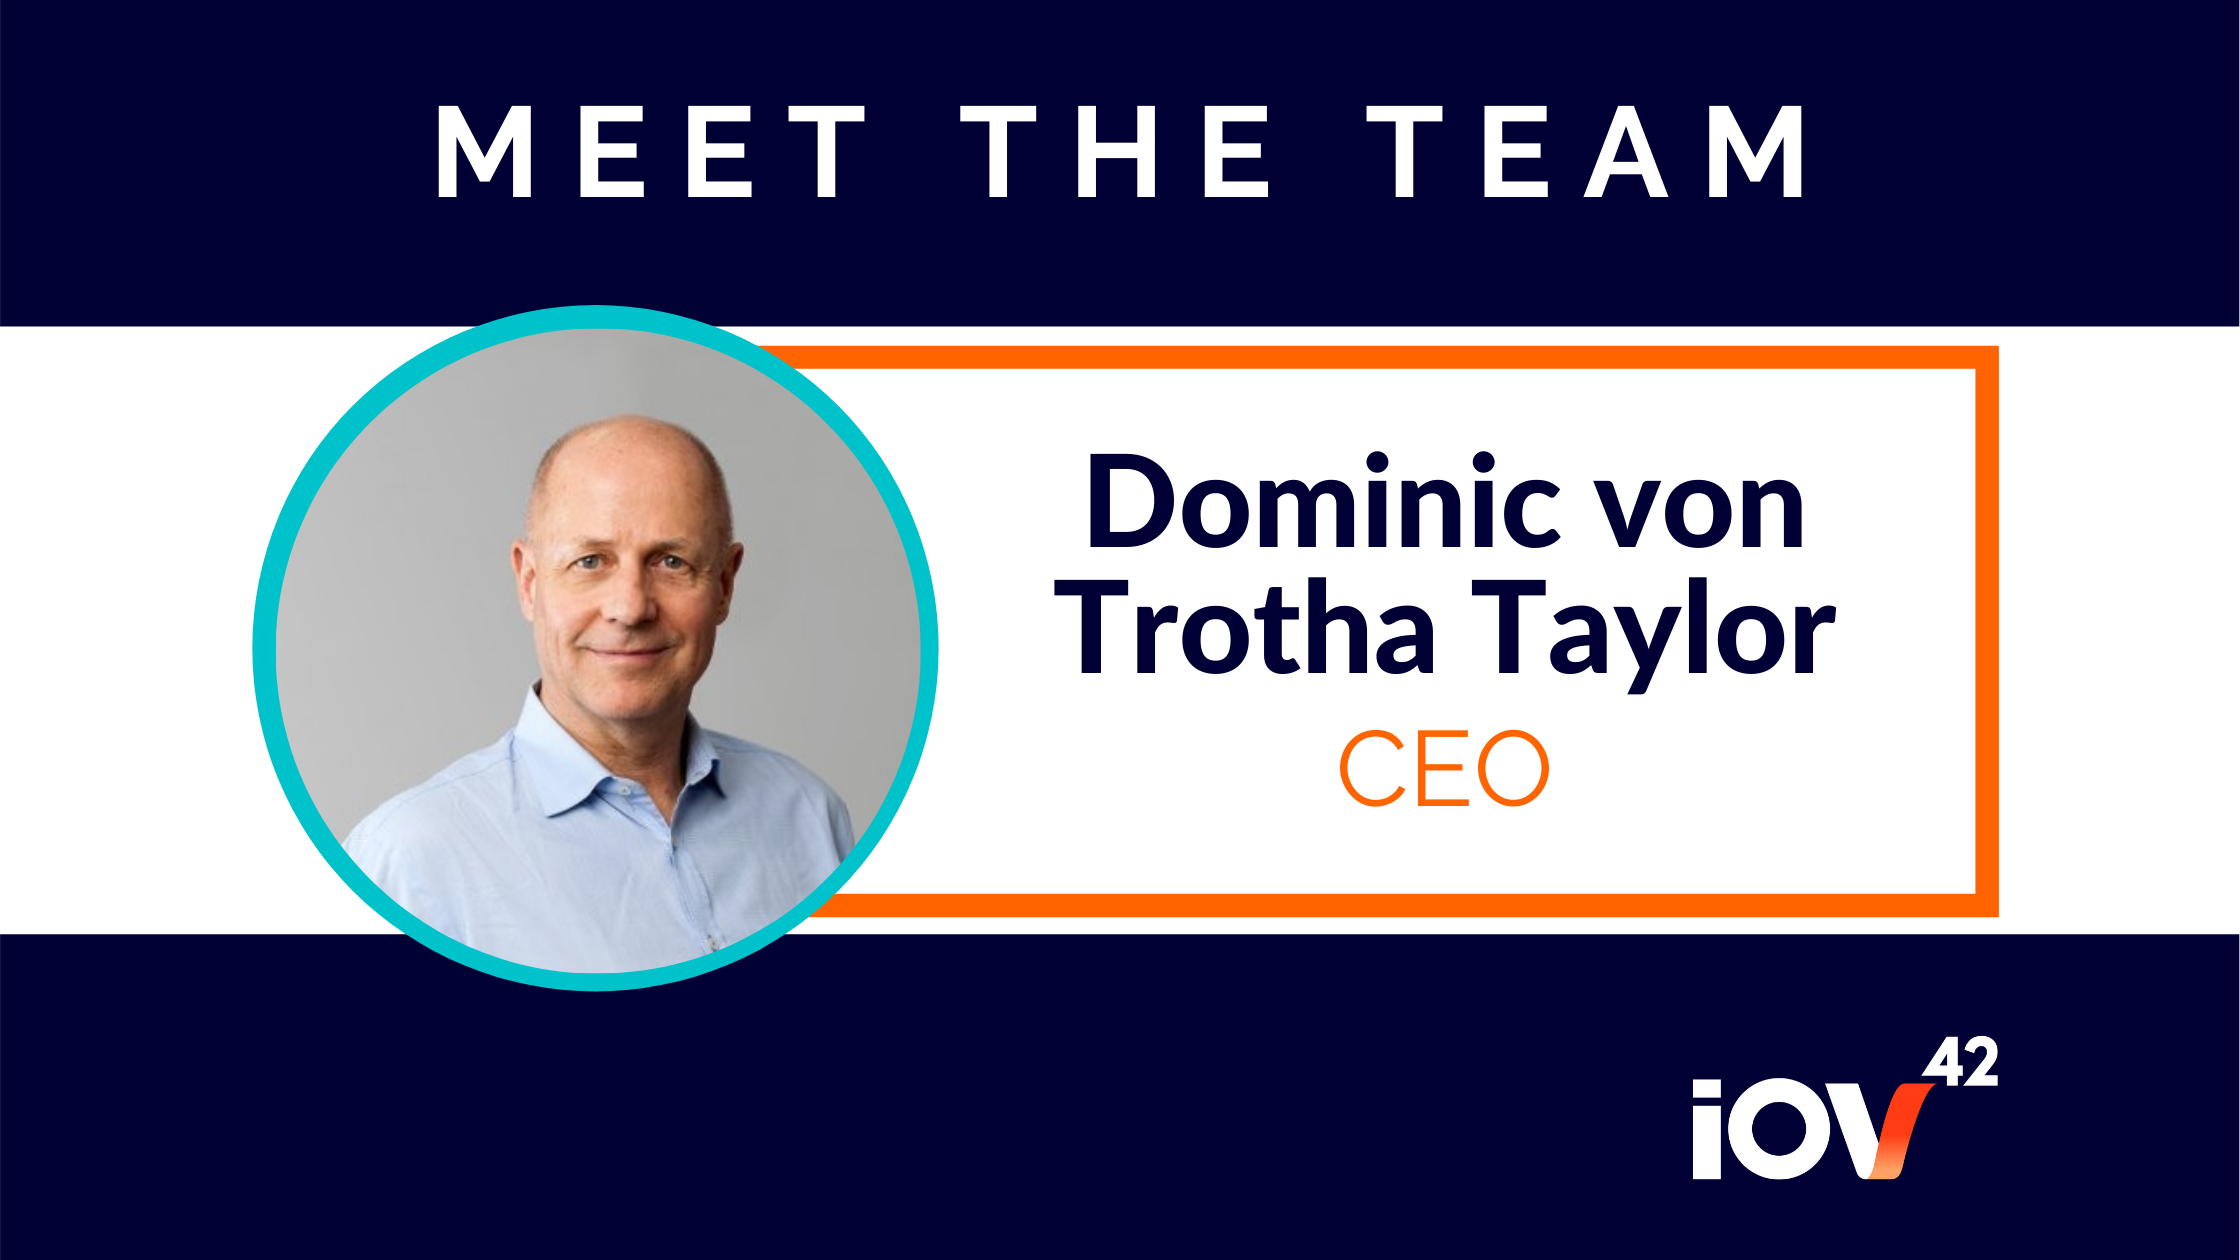 New CEO Dominic von Trotha Taylor brings decades of experience in building tech companies